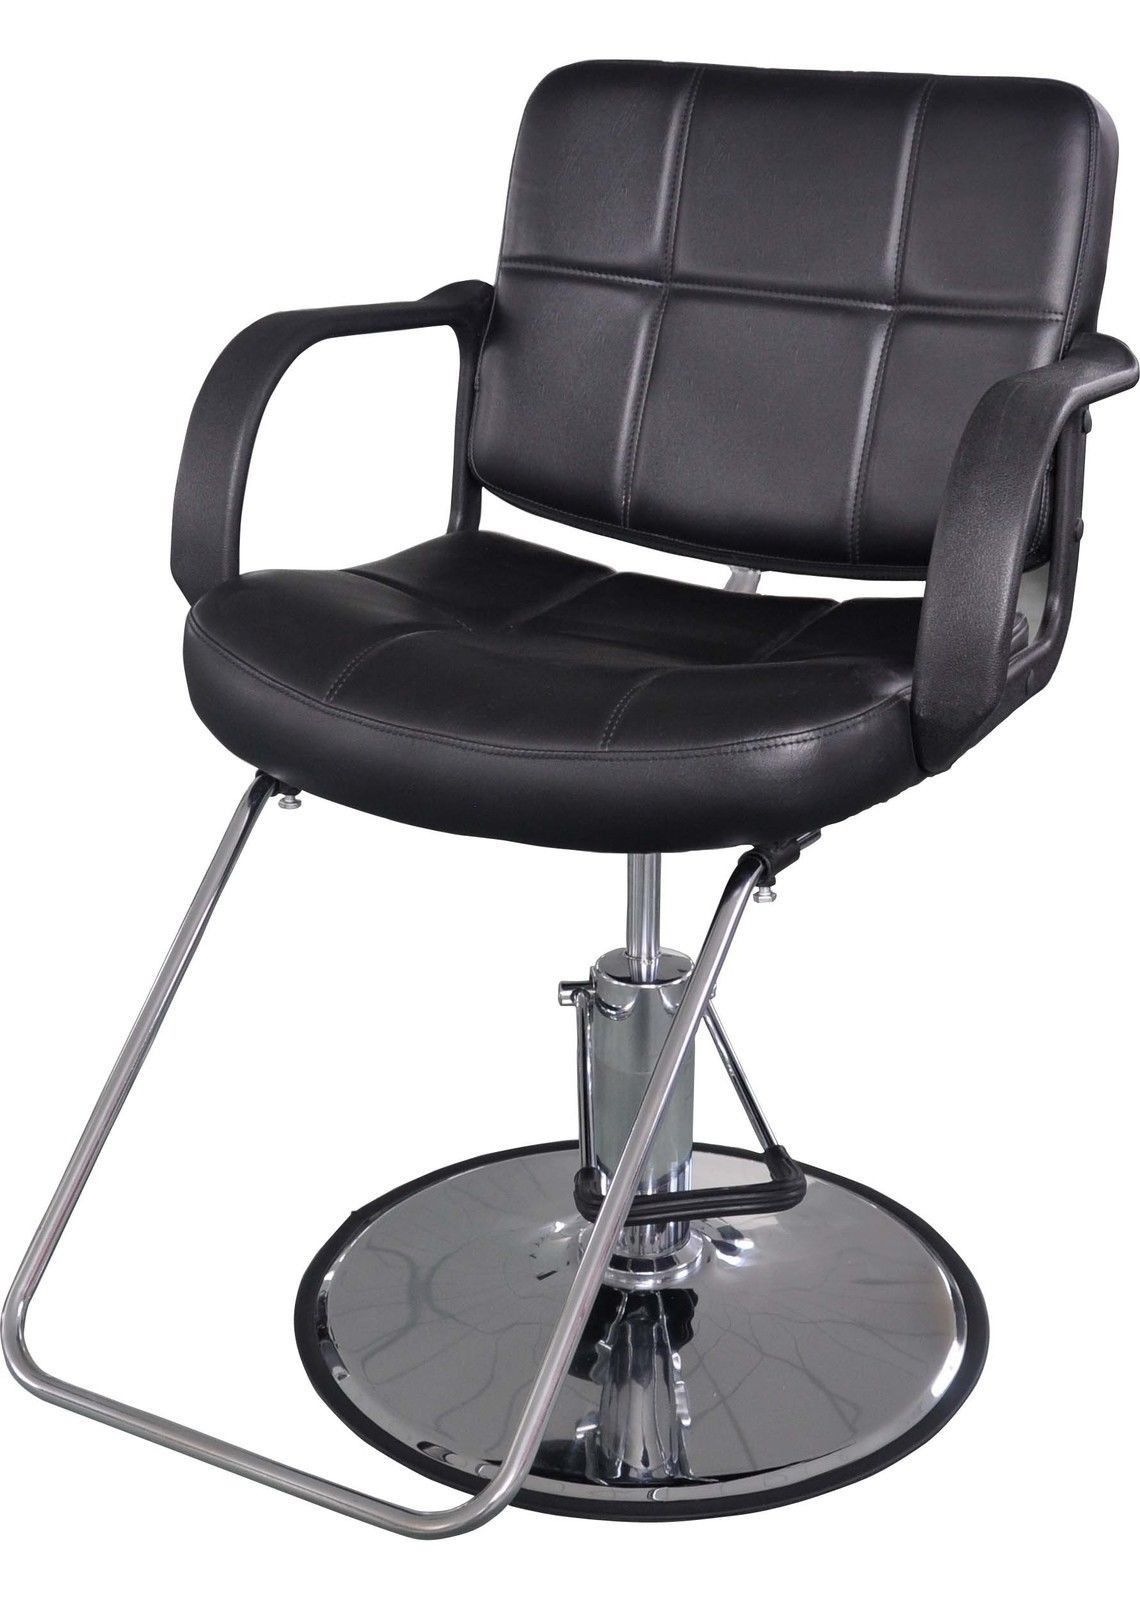 Barberpub classic hydraulic barber chair salon beauty spa for Hydraulic chairs beauty salon